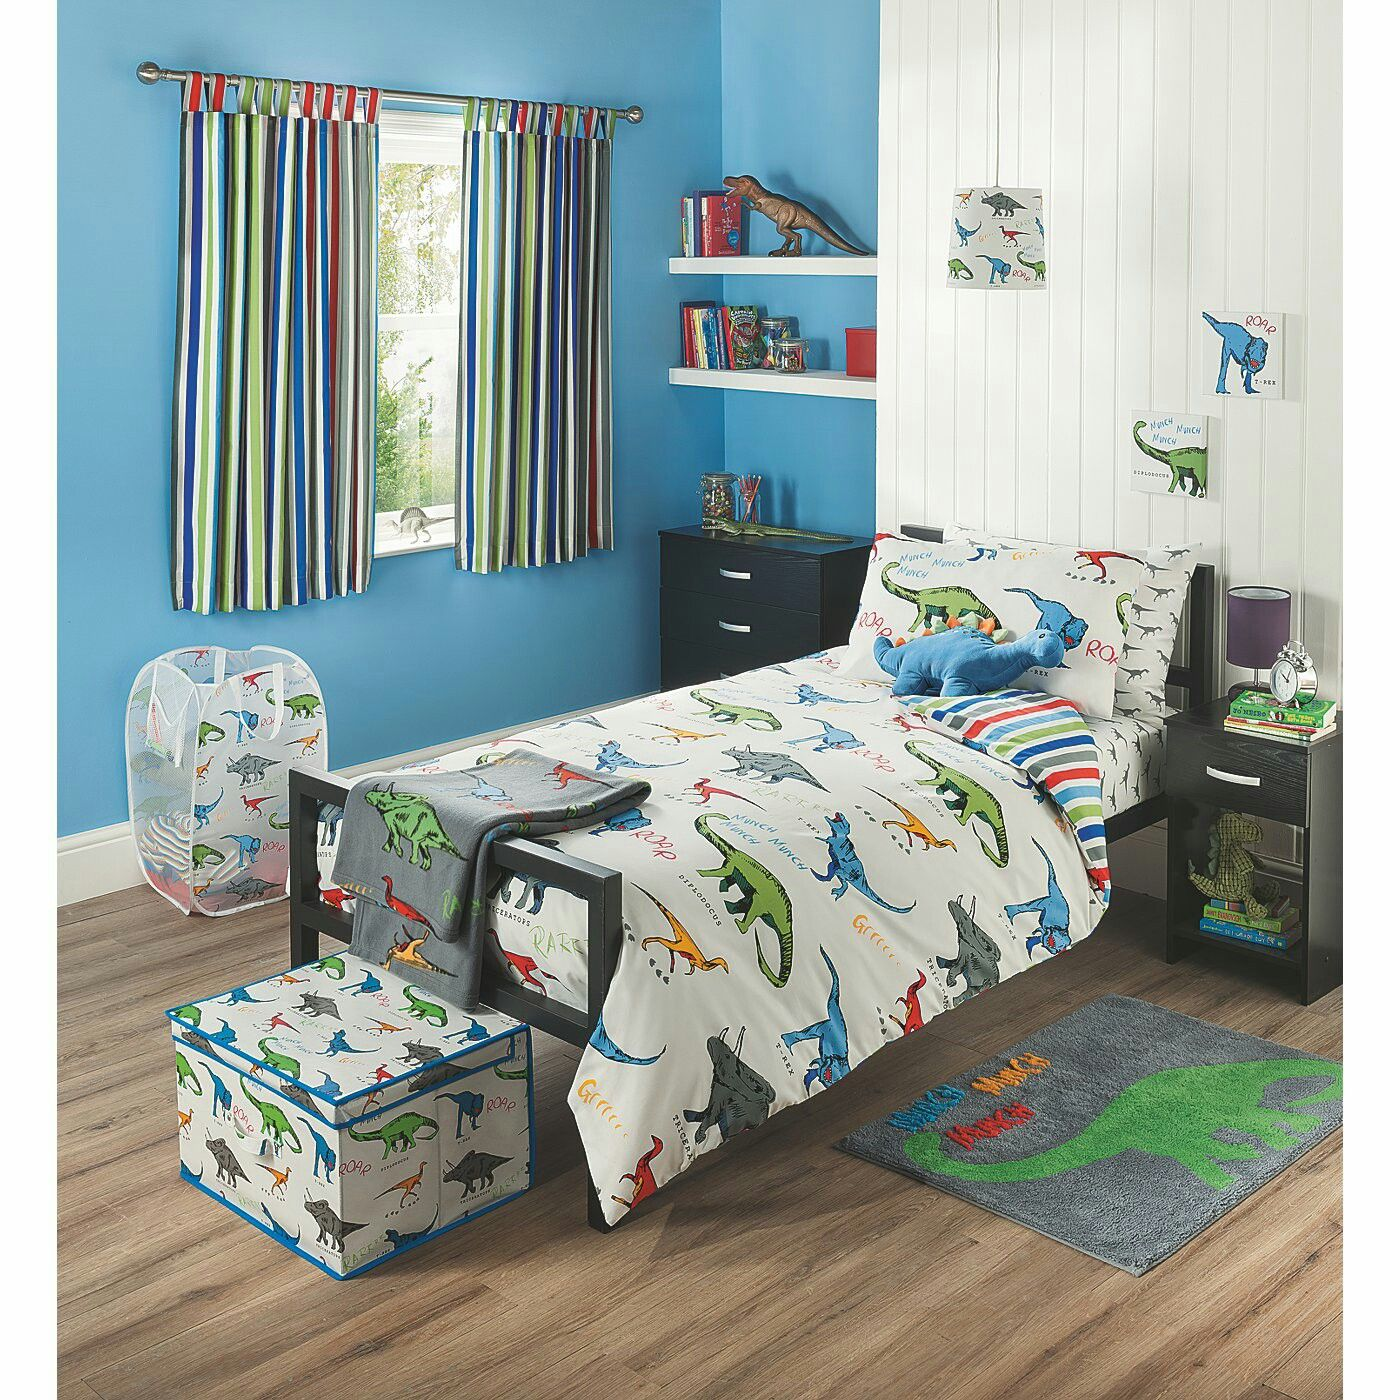 Toddler Rooms For Boys: Pin By Christie Deaver On Toddler Bedroom In 2019